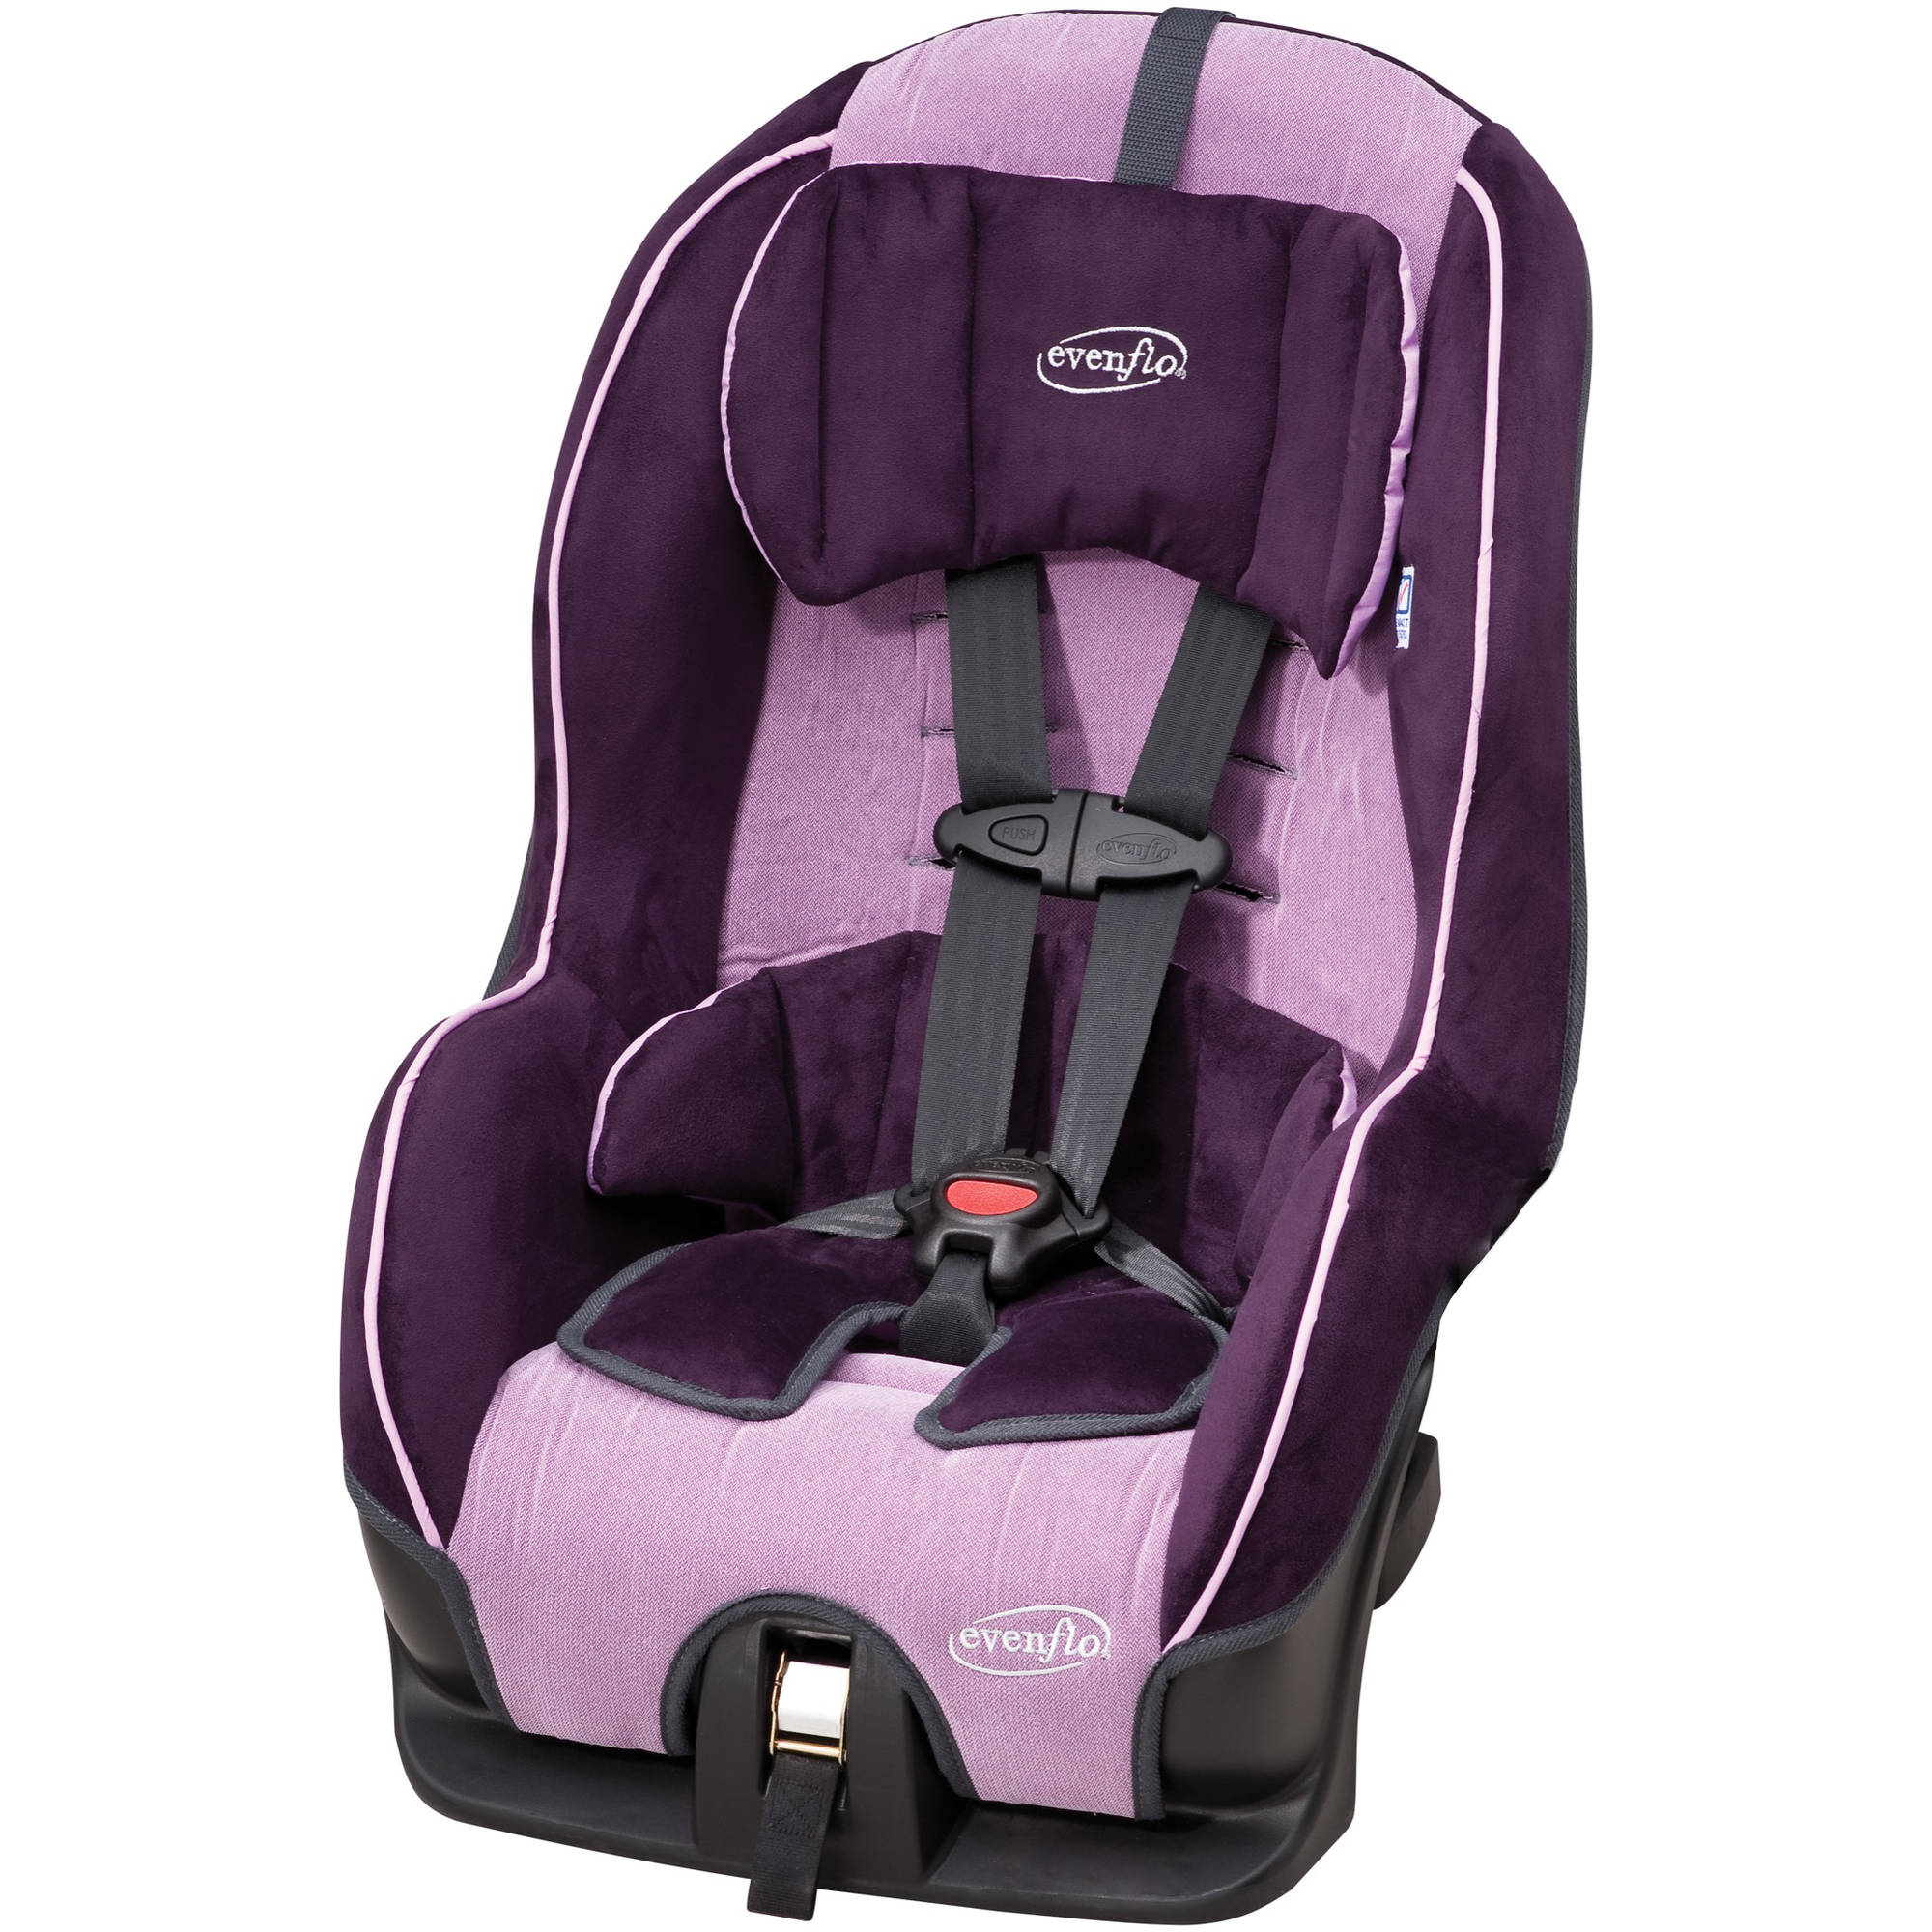 Shop for Car Seats at weatherlyp.gq and browse booster, infant and convertible car seats. Save money. Live better.